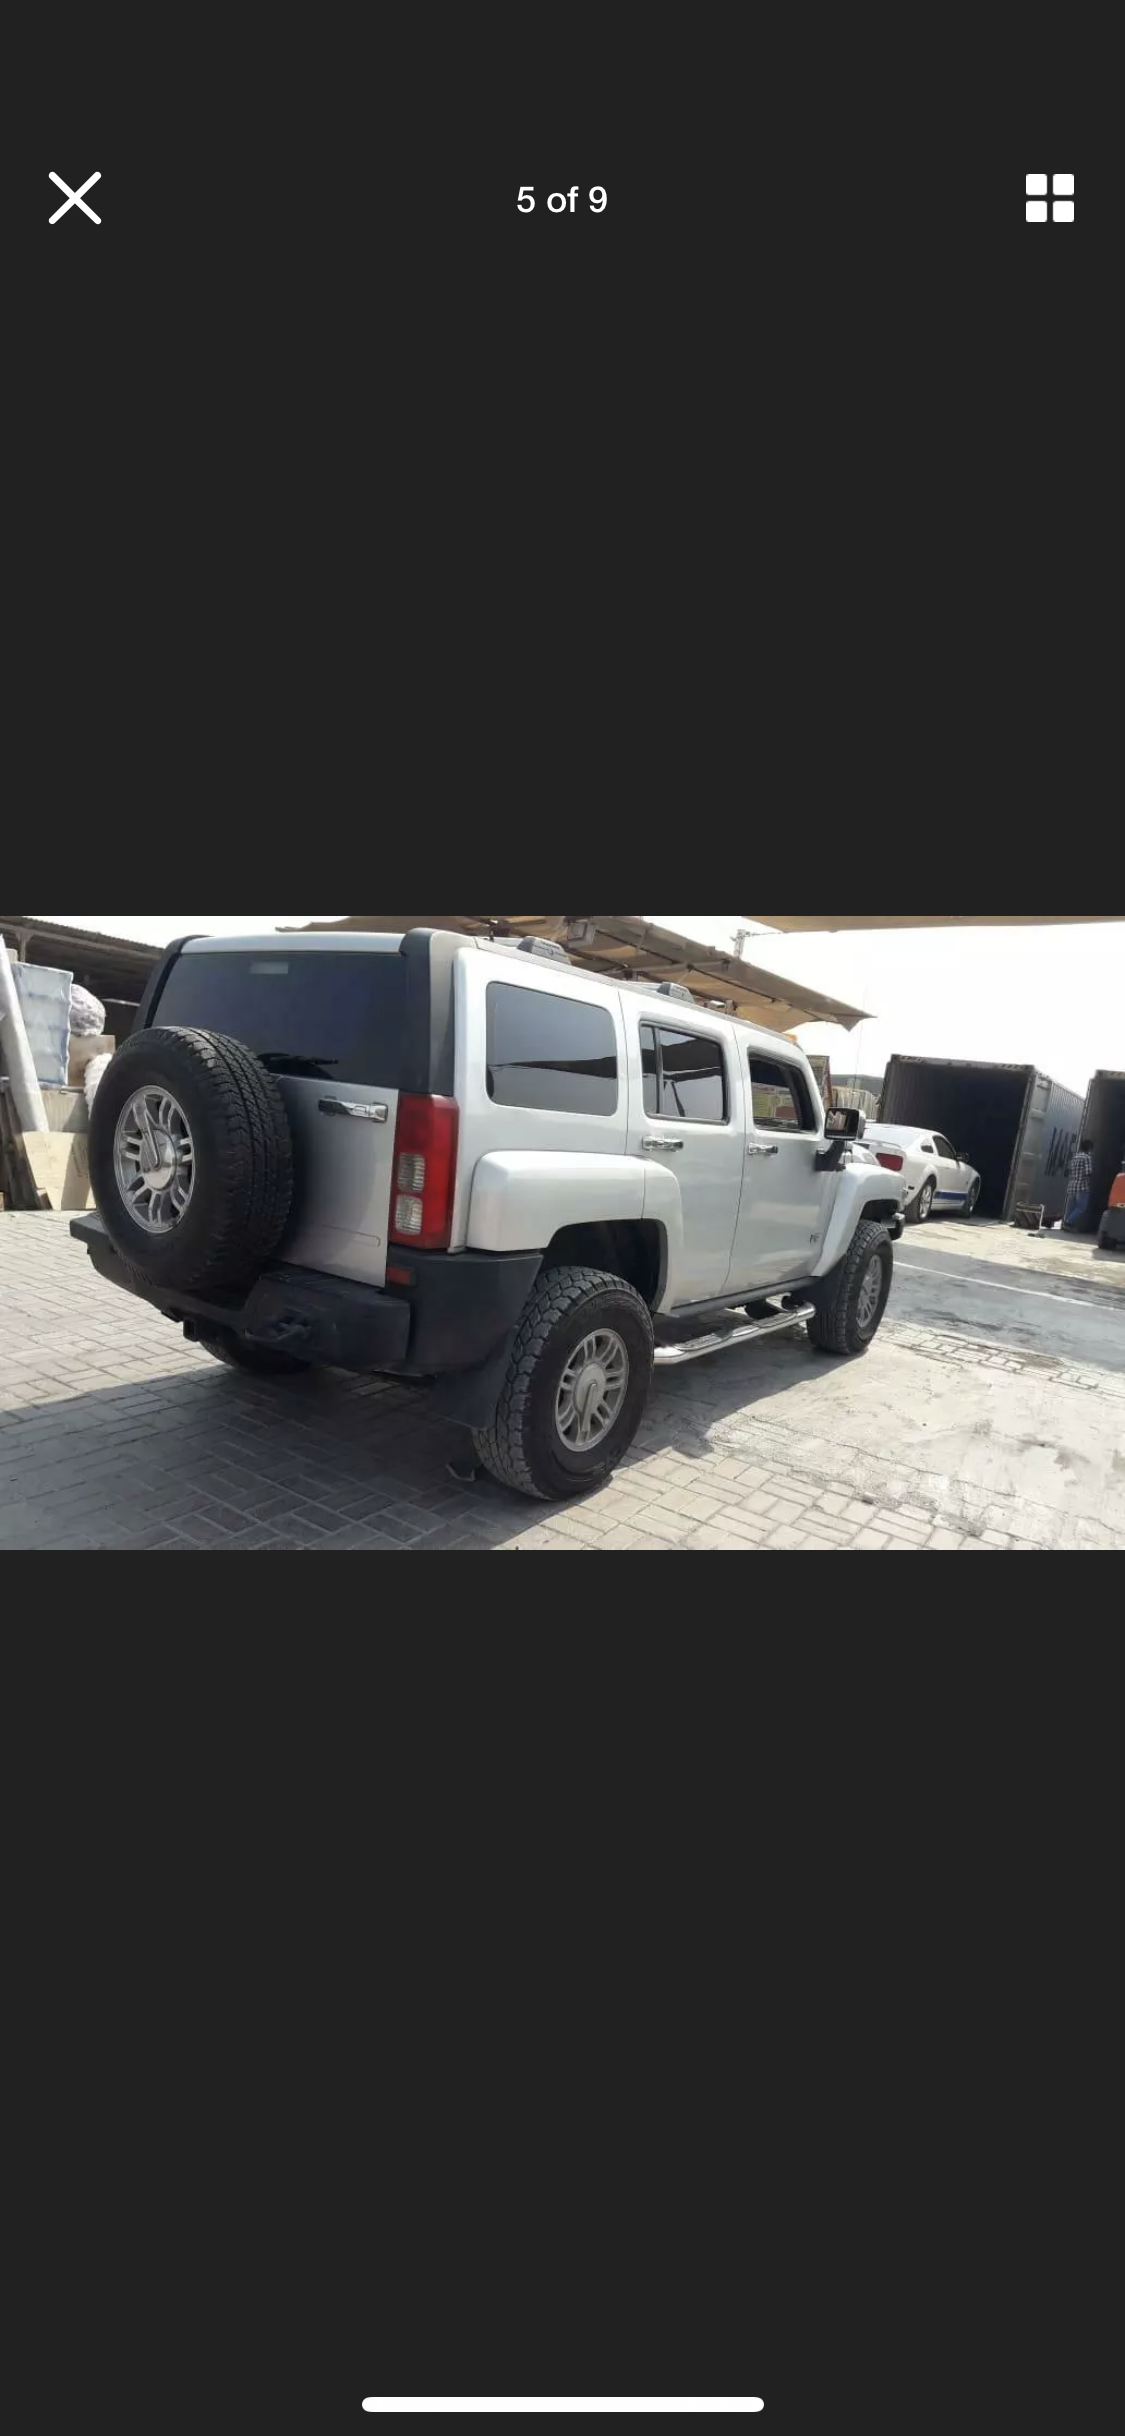 2008 HUMMER H3 3.5 LEFT HAND DRIVE SILVER LHD FRESH IMPORT A For Sale (picture 5 of 6)